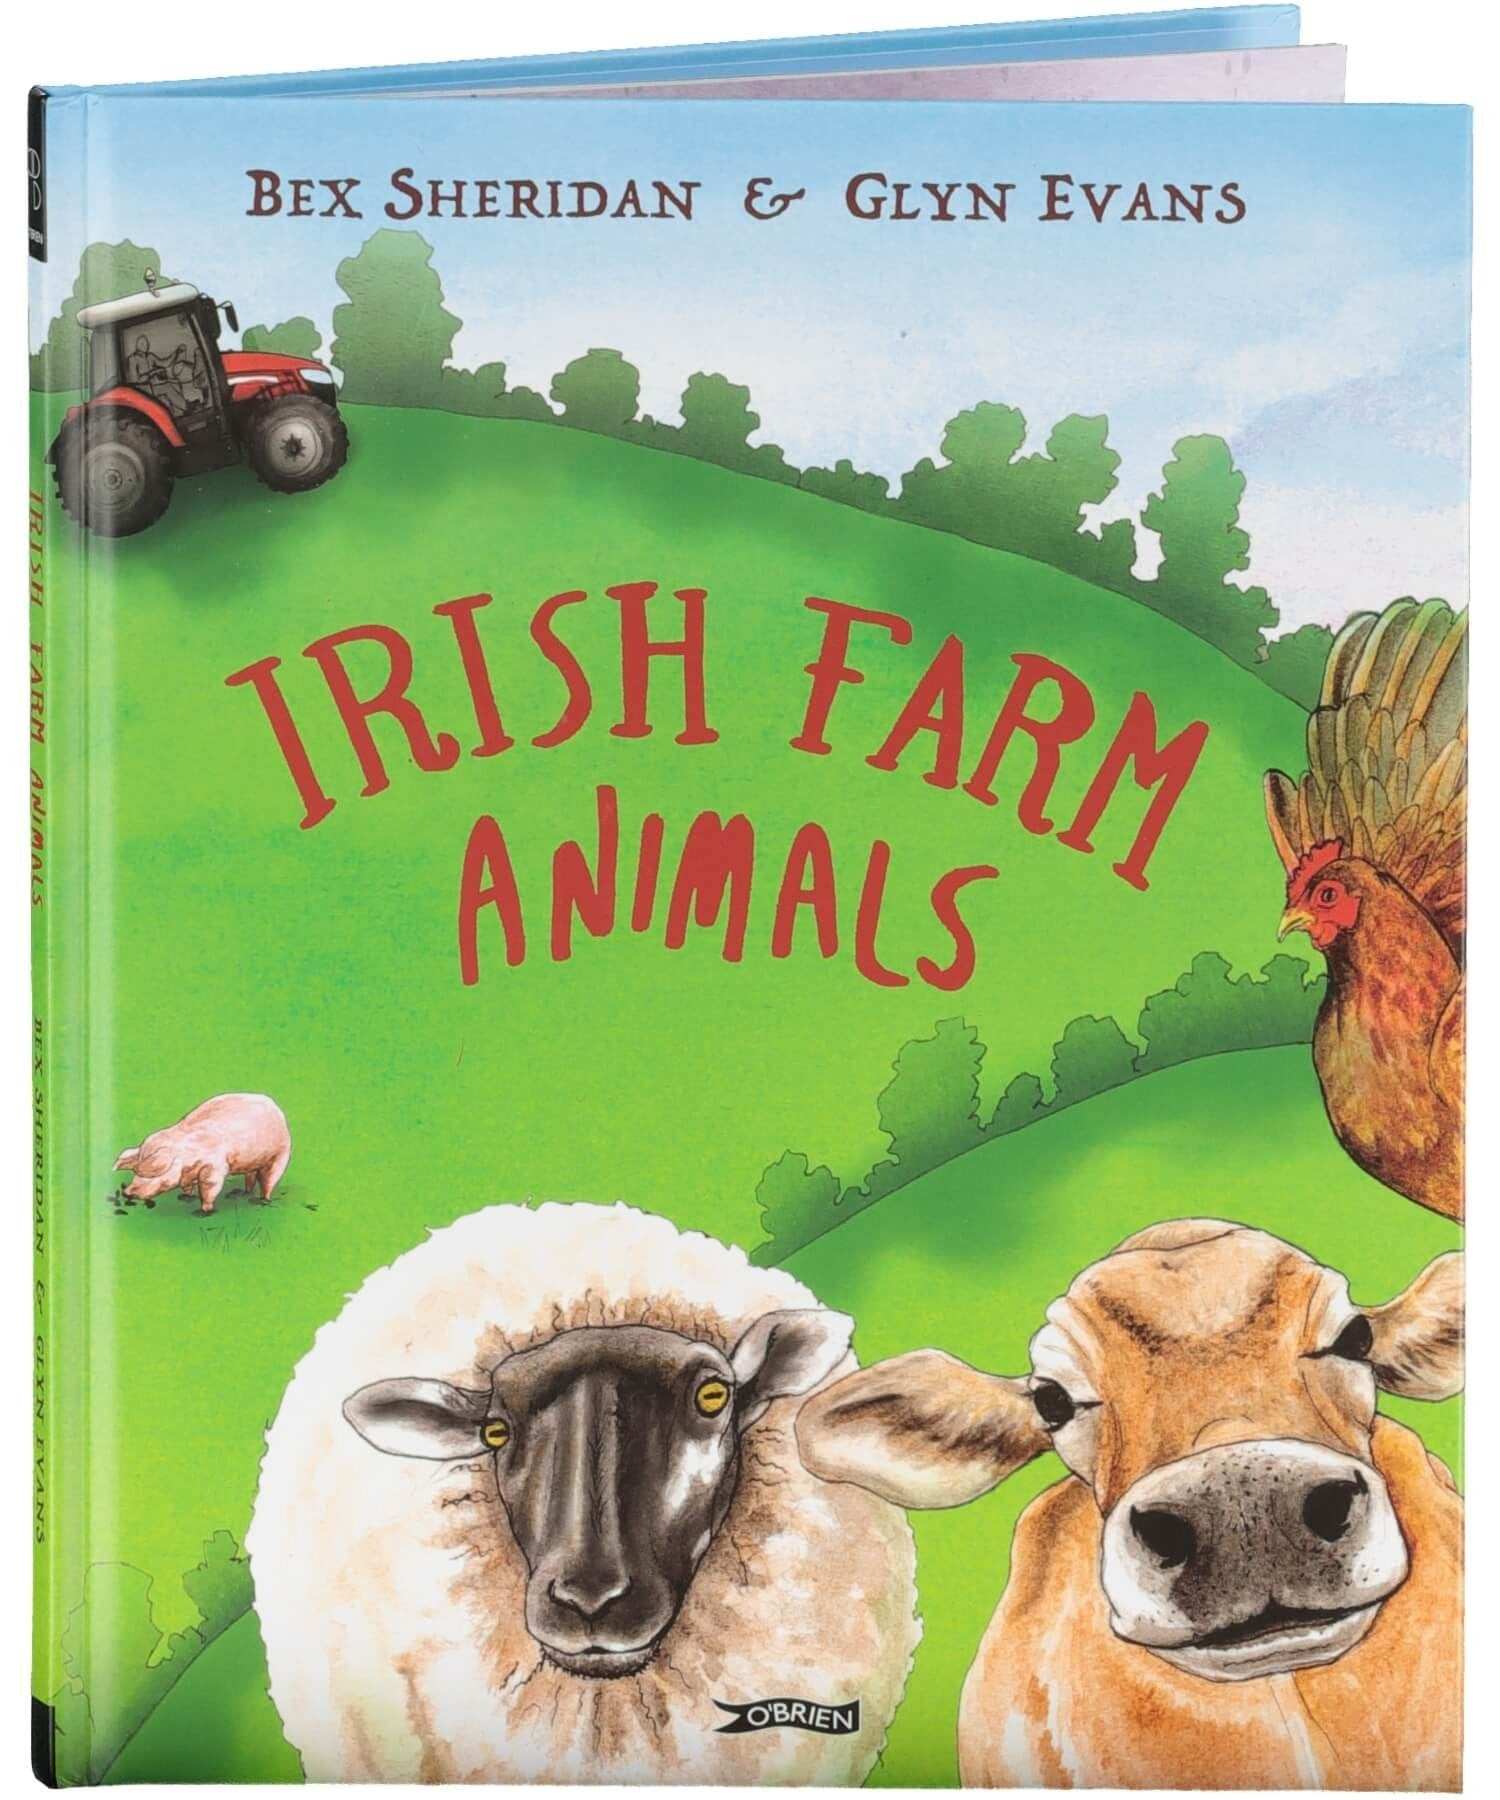 Irish Farm Animals - [The O'Brien Press] - Books & Stationery - Irish Gifts